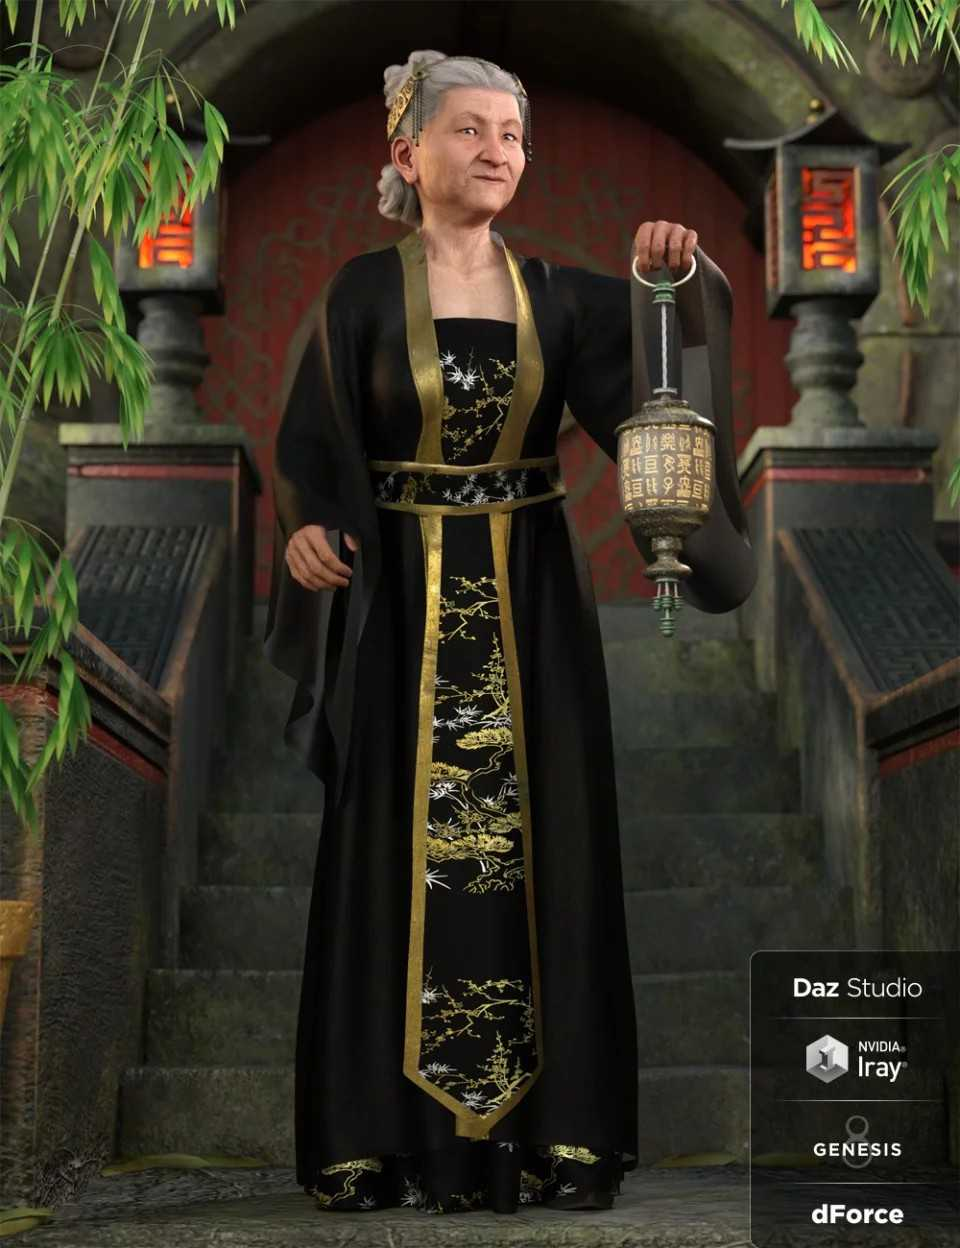 dForce Palace Robes Outfit for